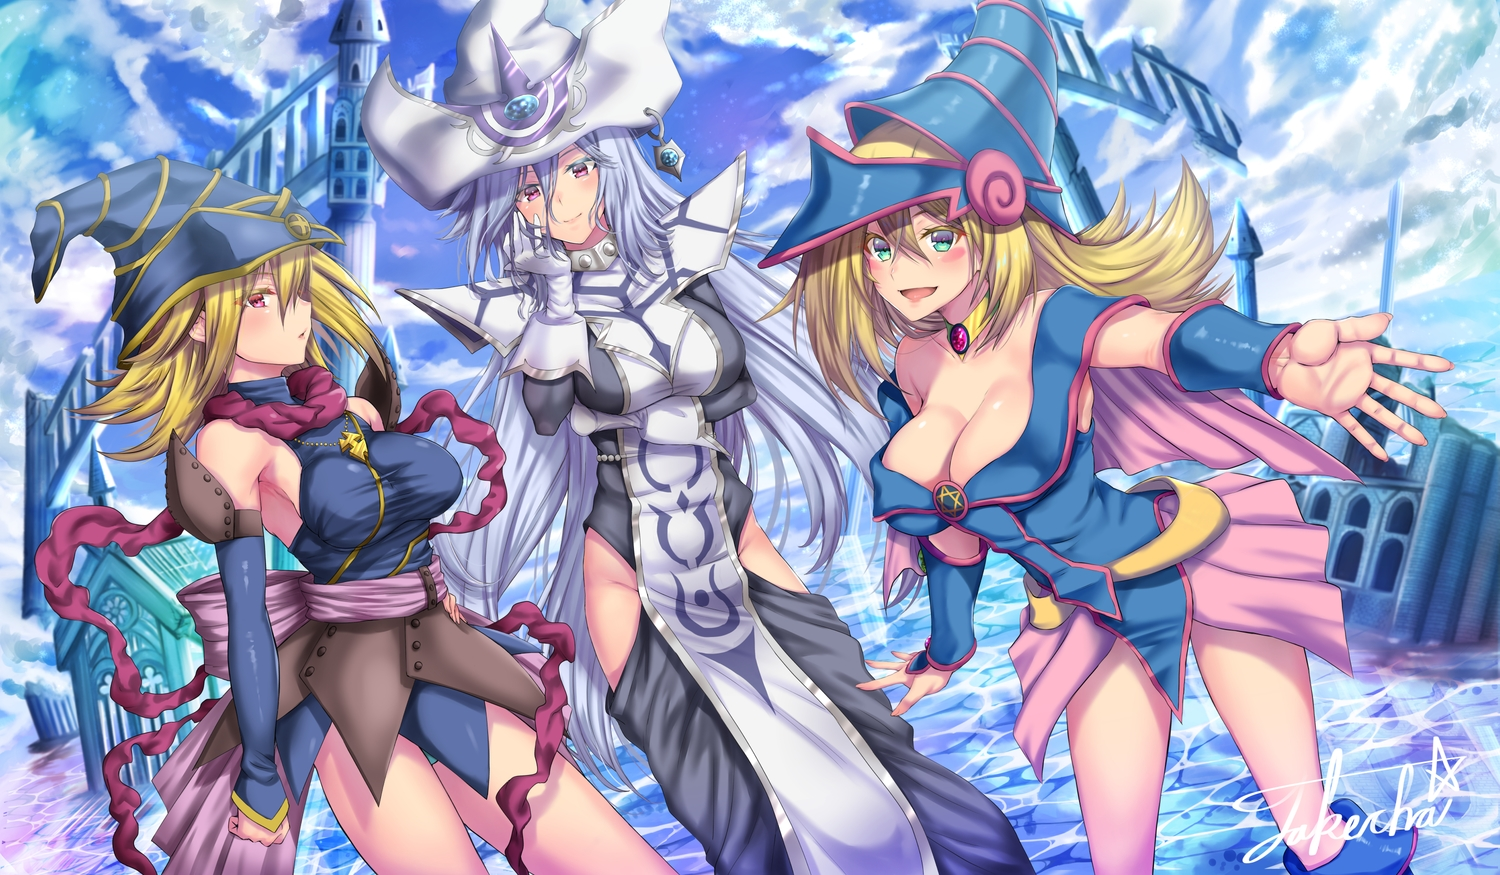 blonde_hair breasts building cleavage clouds dark_magician_girl dress gagaga_girl hat long_hair signed silent_magician sky takecha water witch_hat yu-gi-oh